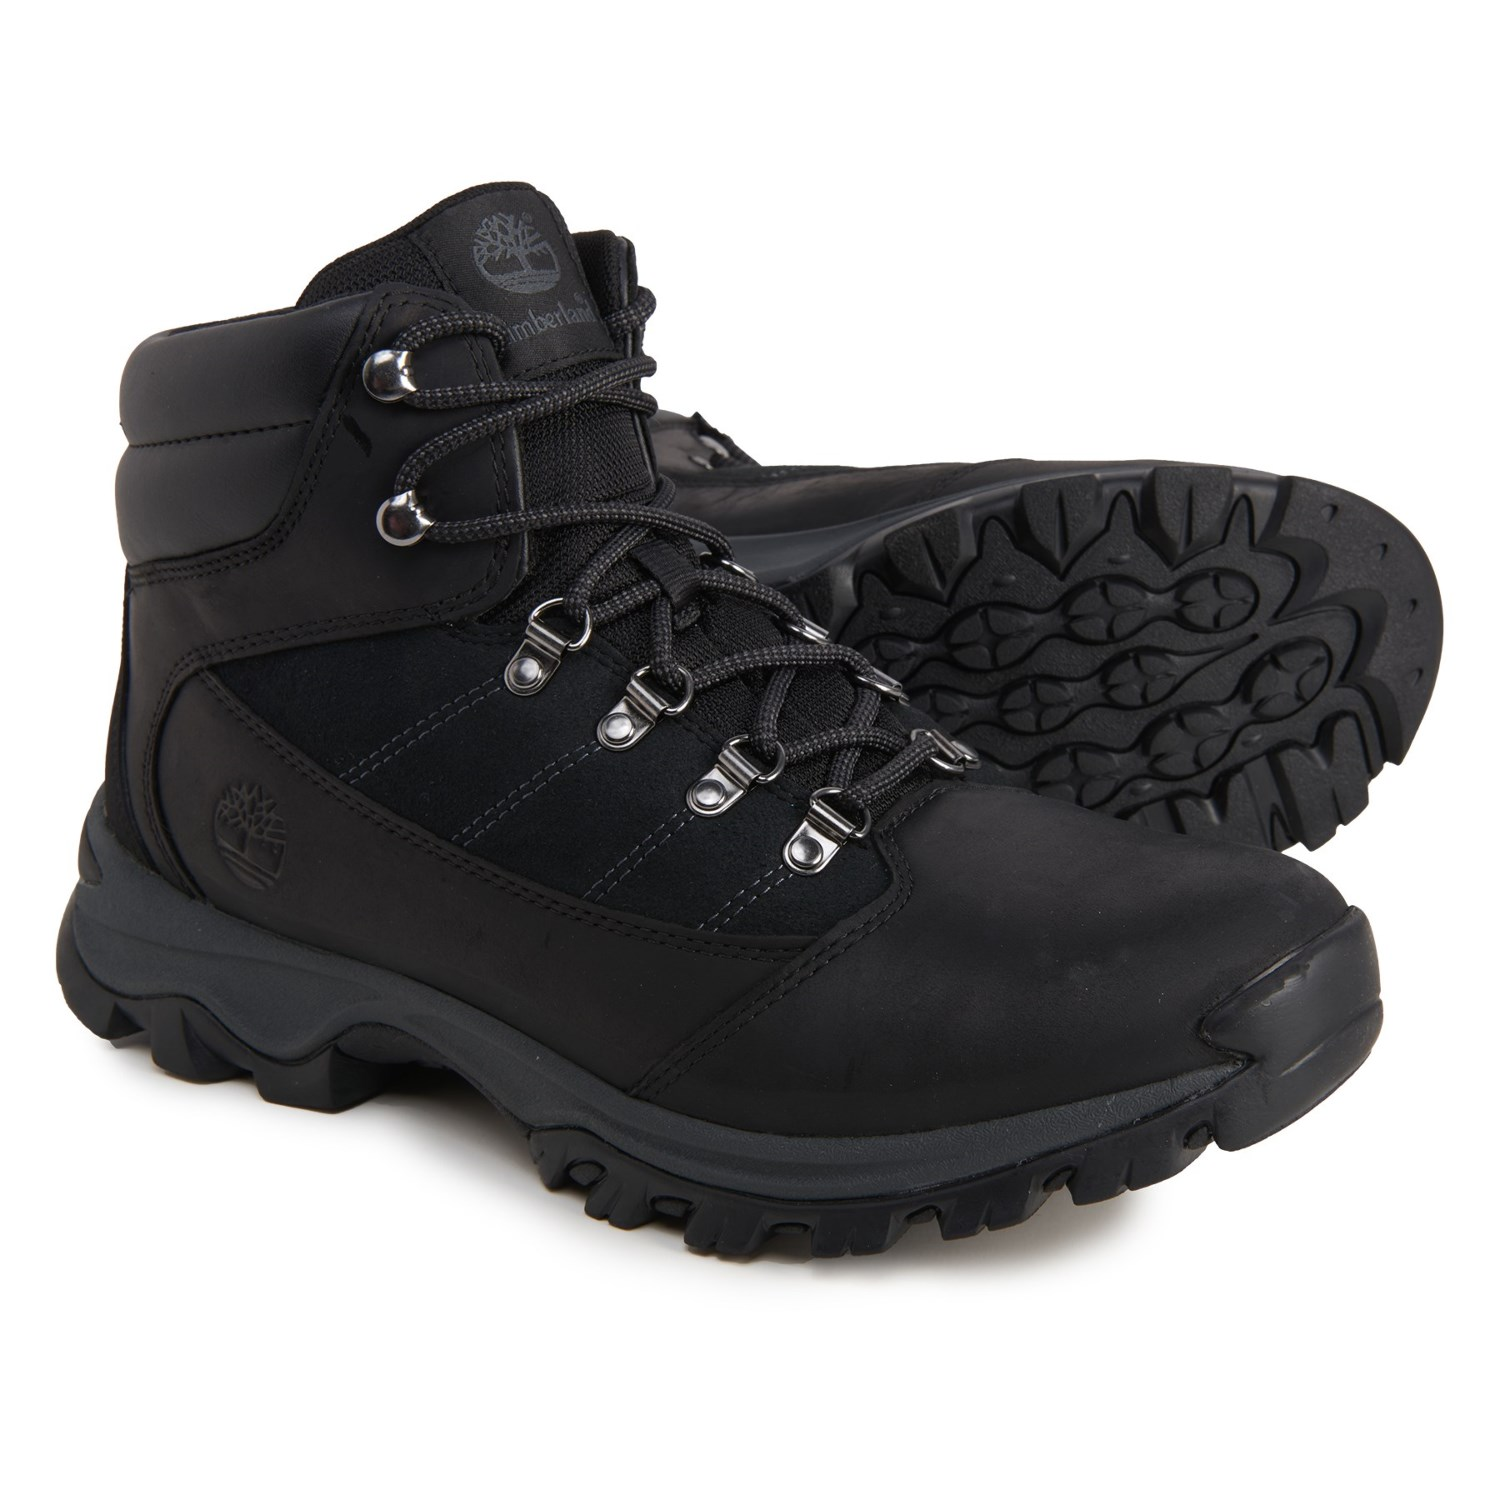 ladrón expedido silencio  Timberland Rangeley Mid Hiking Boots (For Men) - Save 51%